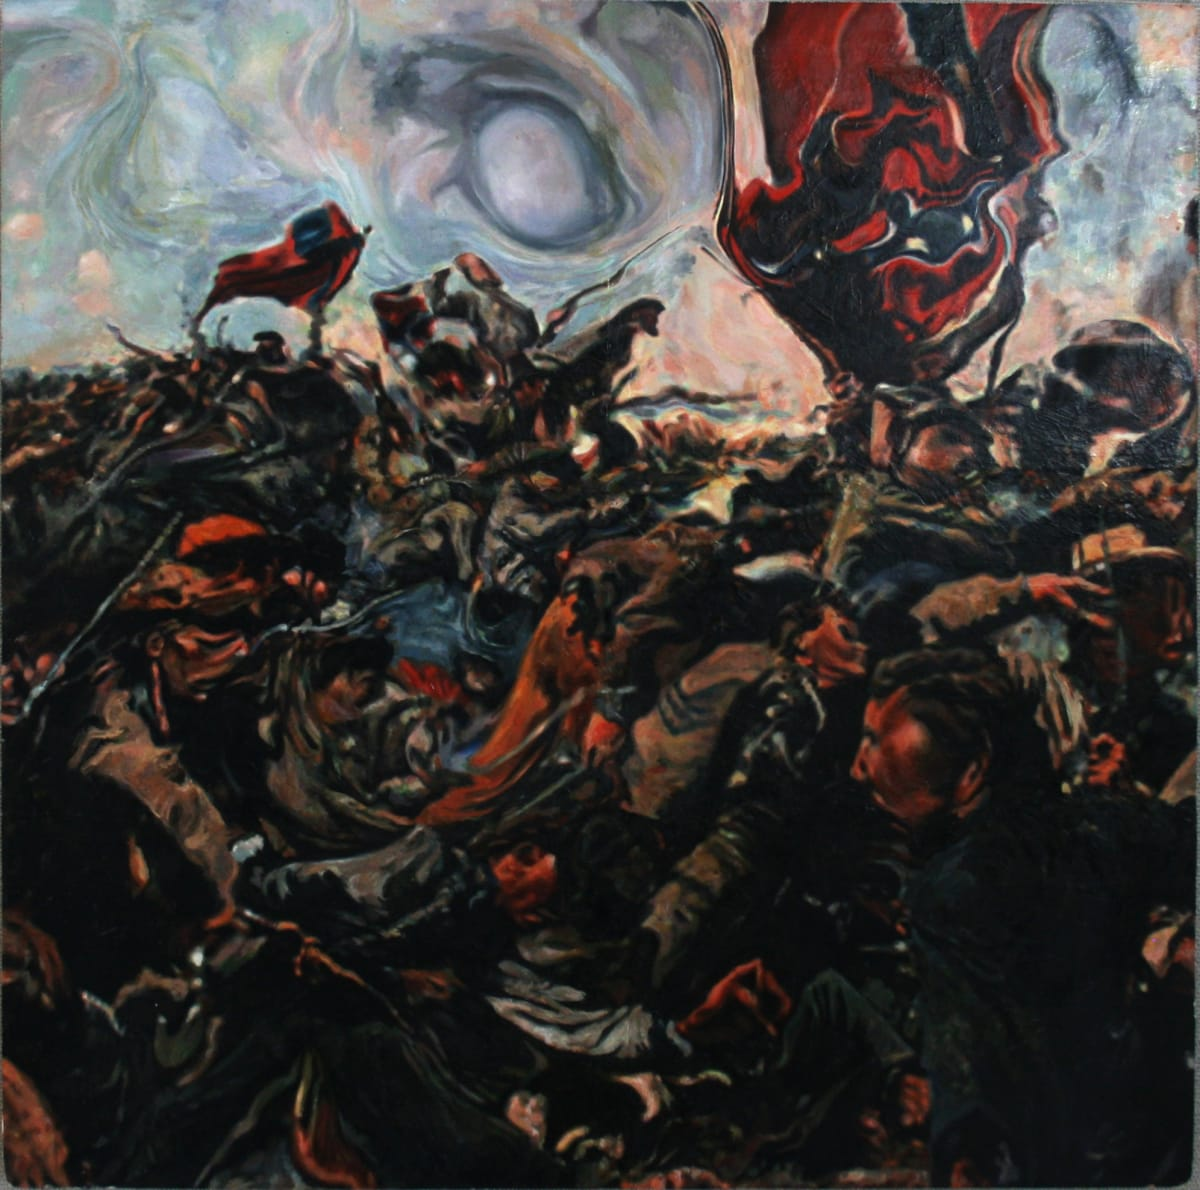 Cason Sherman S Peregrination 313 Ce Significant Unknown Battles Of Us History Corrections In Research Made Oil On Wood With 2009 2014